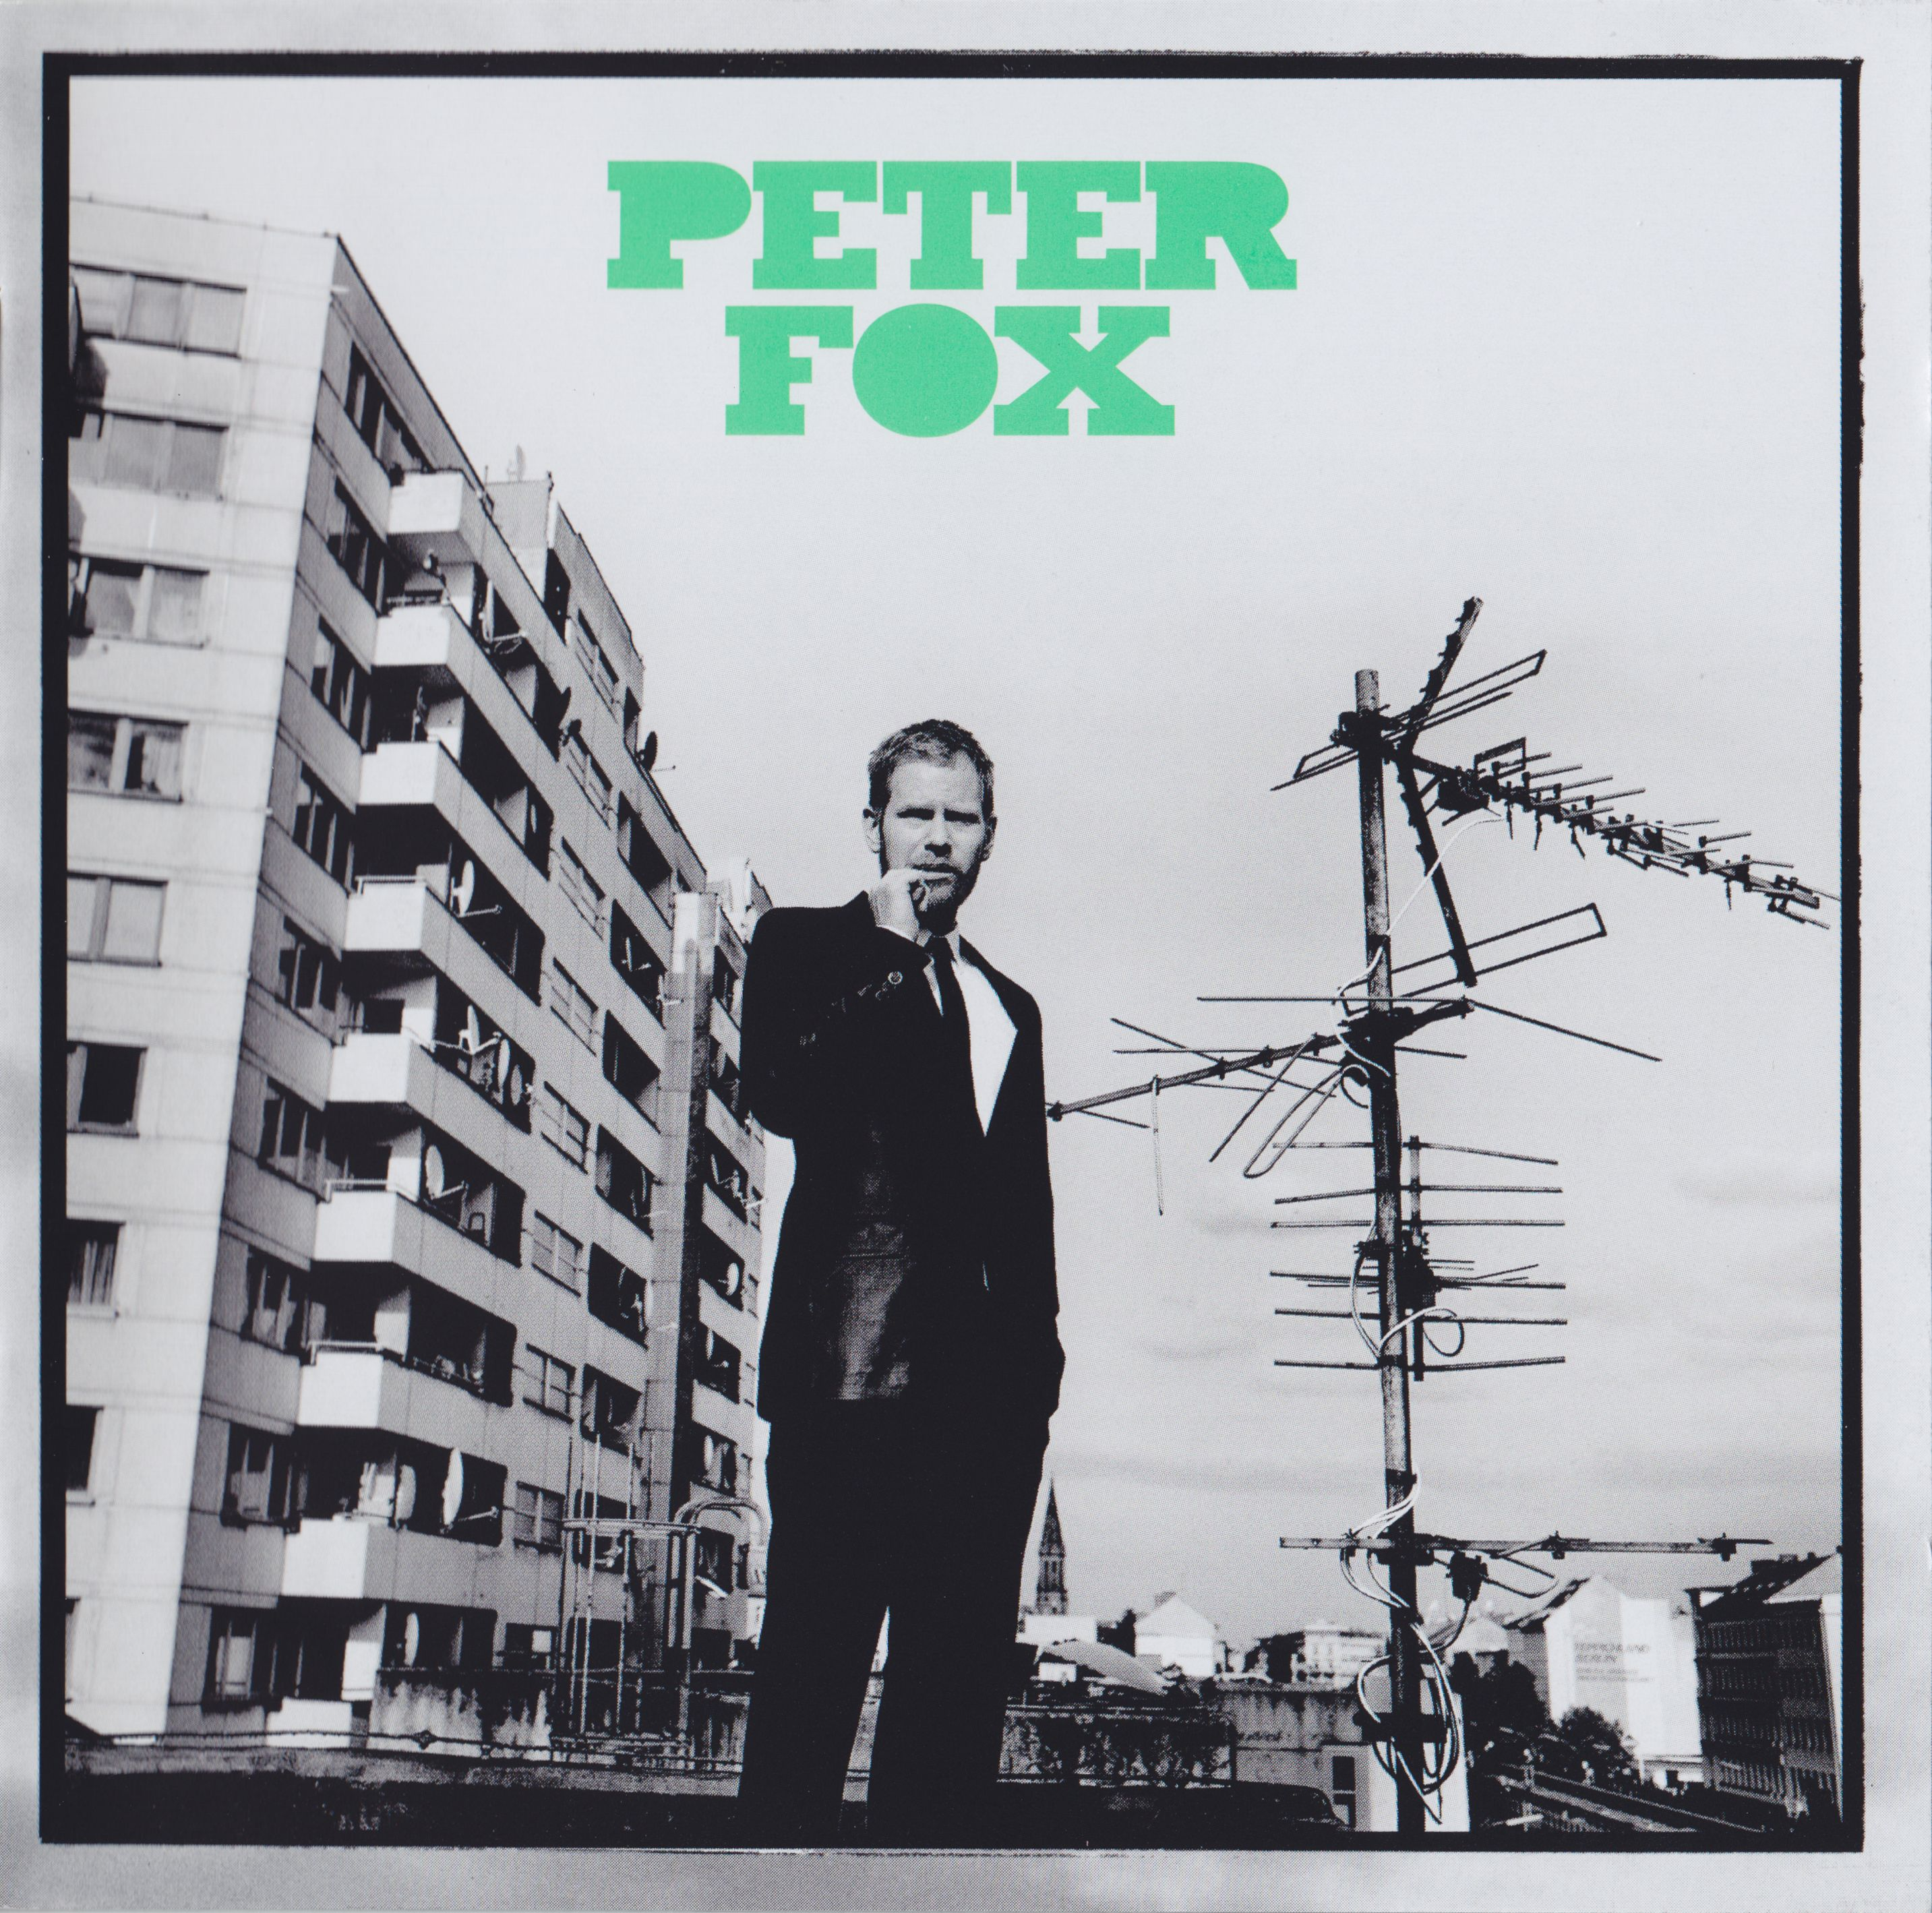 Peter Fox - Stadtaffe album cover